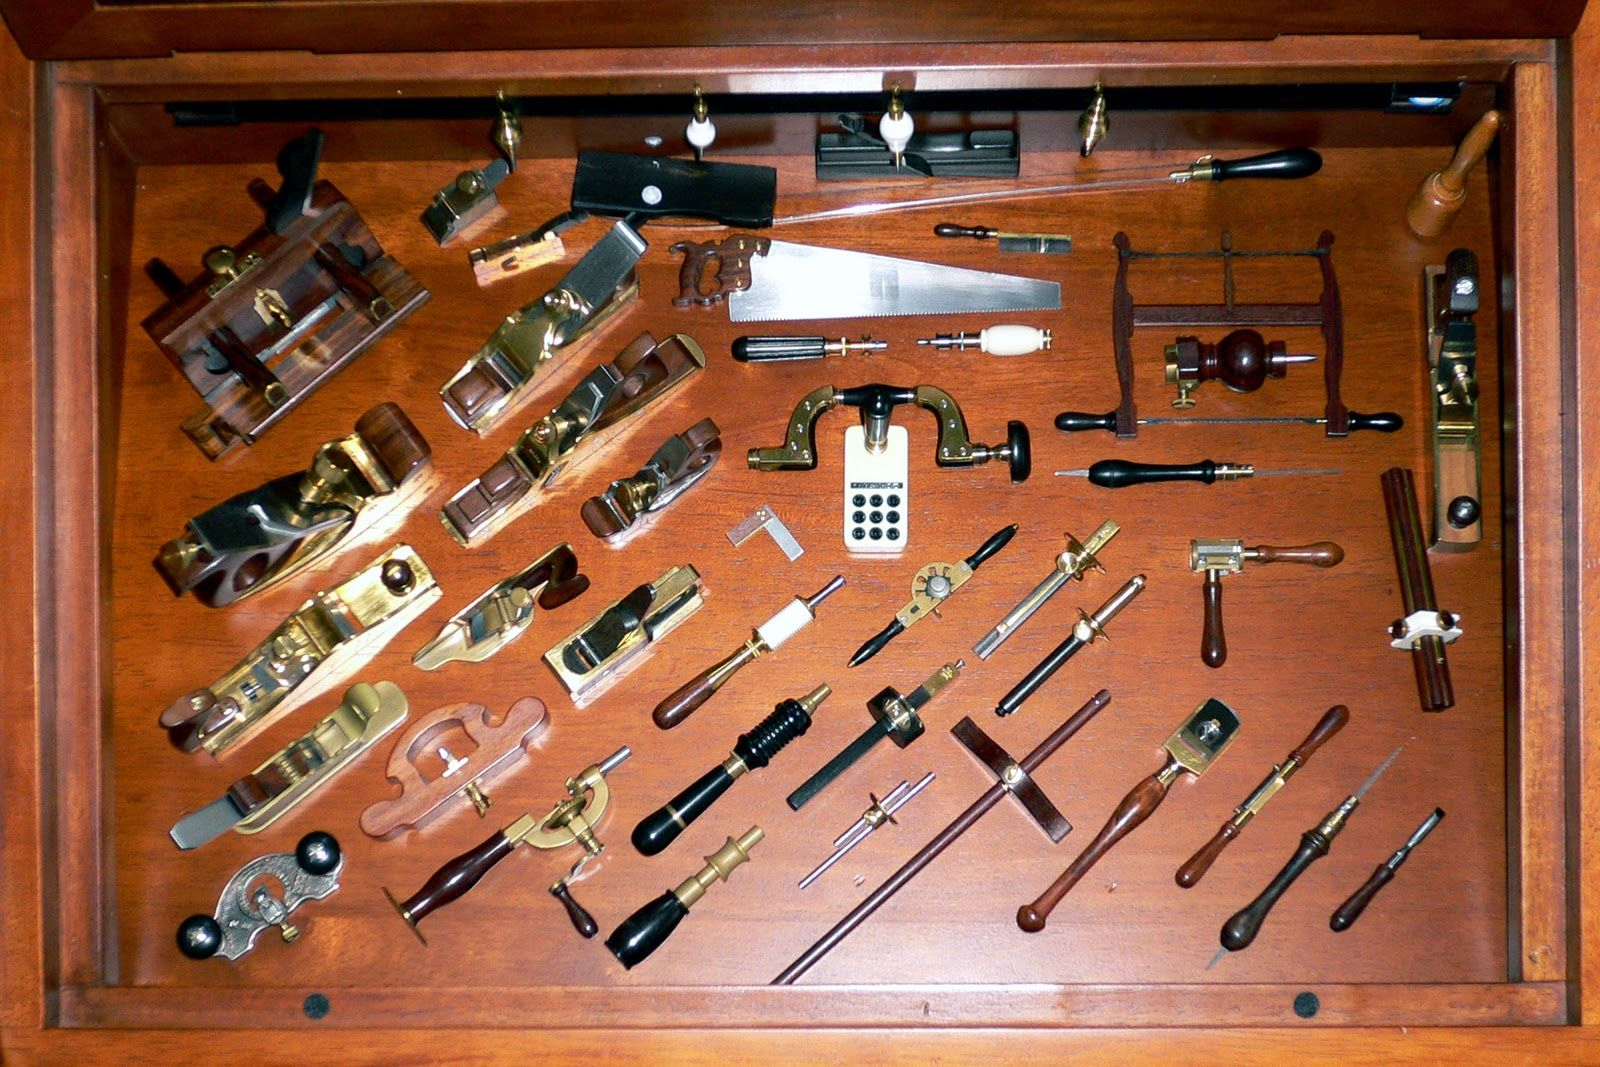 Pin By Matt In Indy On Tools Board Woodworking Tools Woodworking